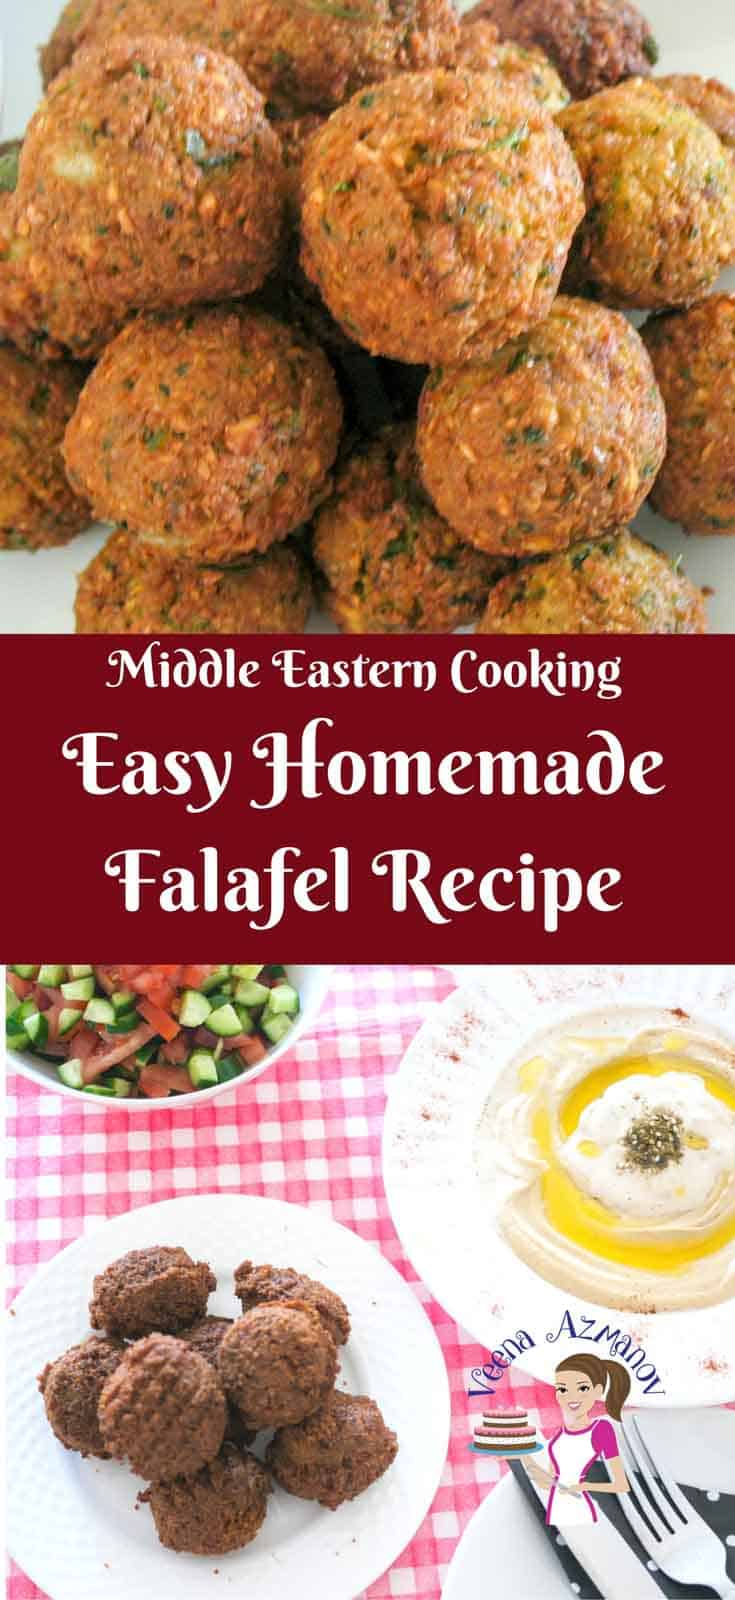 This Middle Eastern Classic is an all time favorite and often perceived as a best eaten out.  My easy homemade falafel recipe along with my tips and tricks will show you how simple easy and absolutely fun it can be.